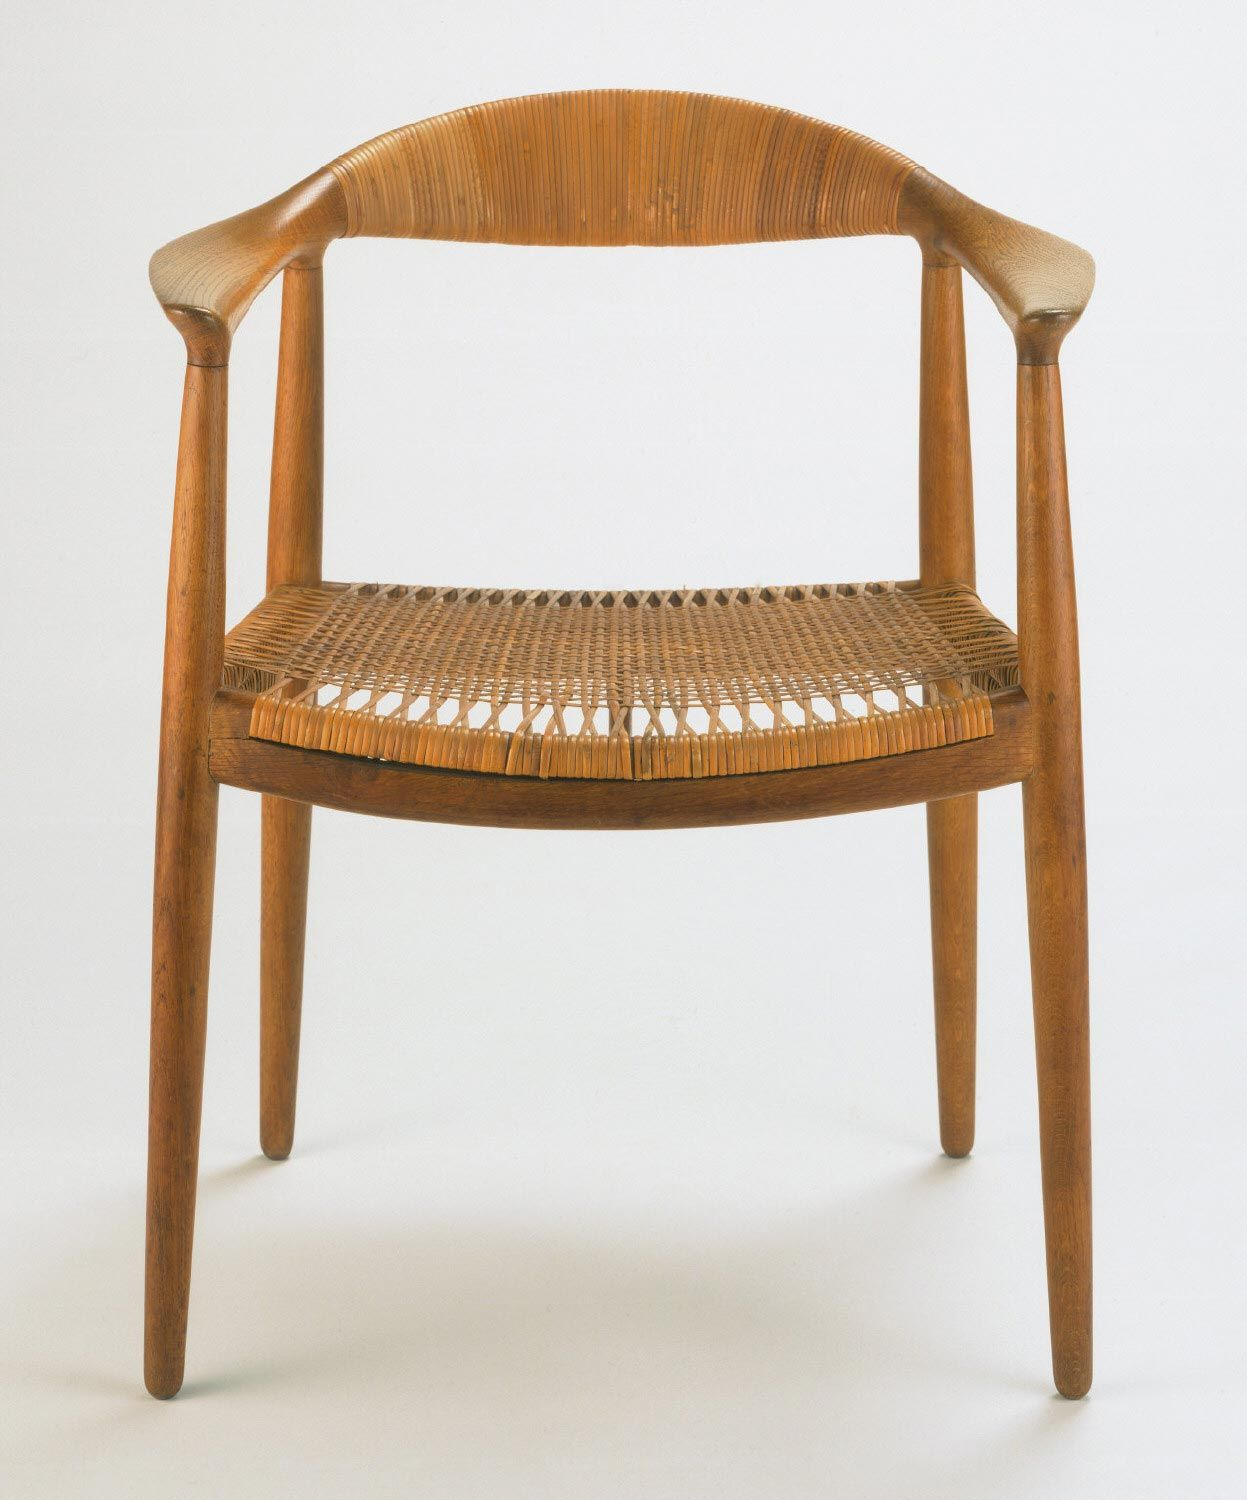 scandinavian design furniture ideas wooden chair. Philadelphia Museum Of Art - \ Scandinavian Design Furniture Ideas Wooden Chair